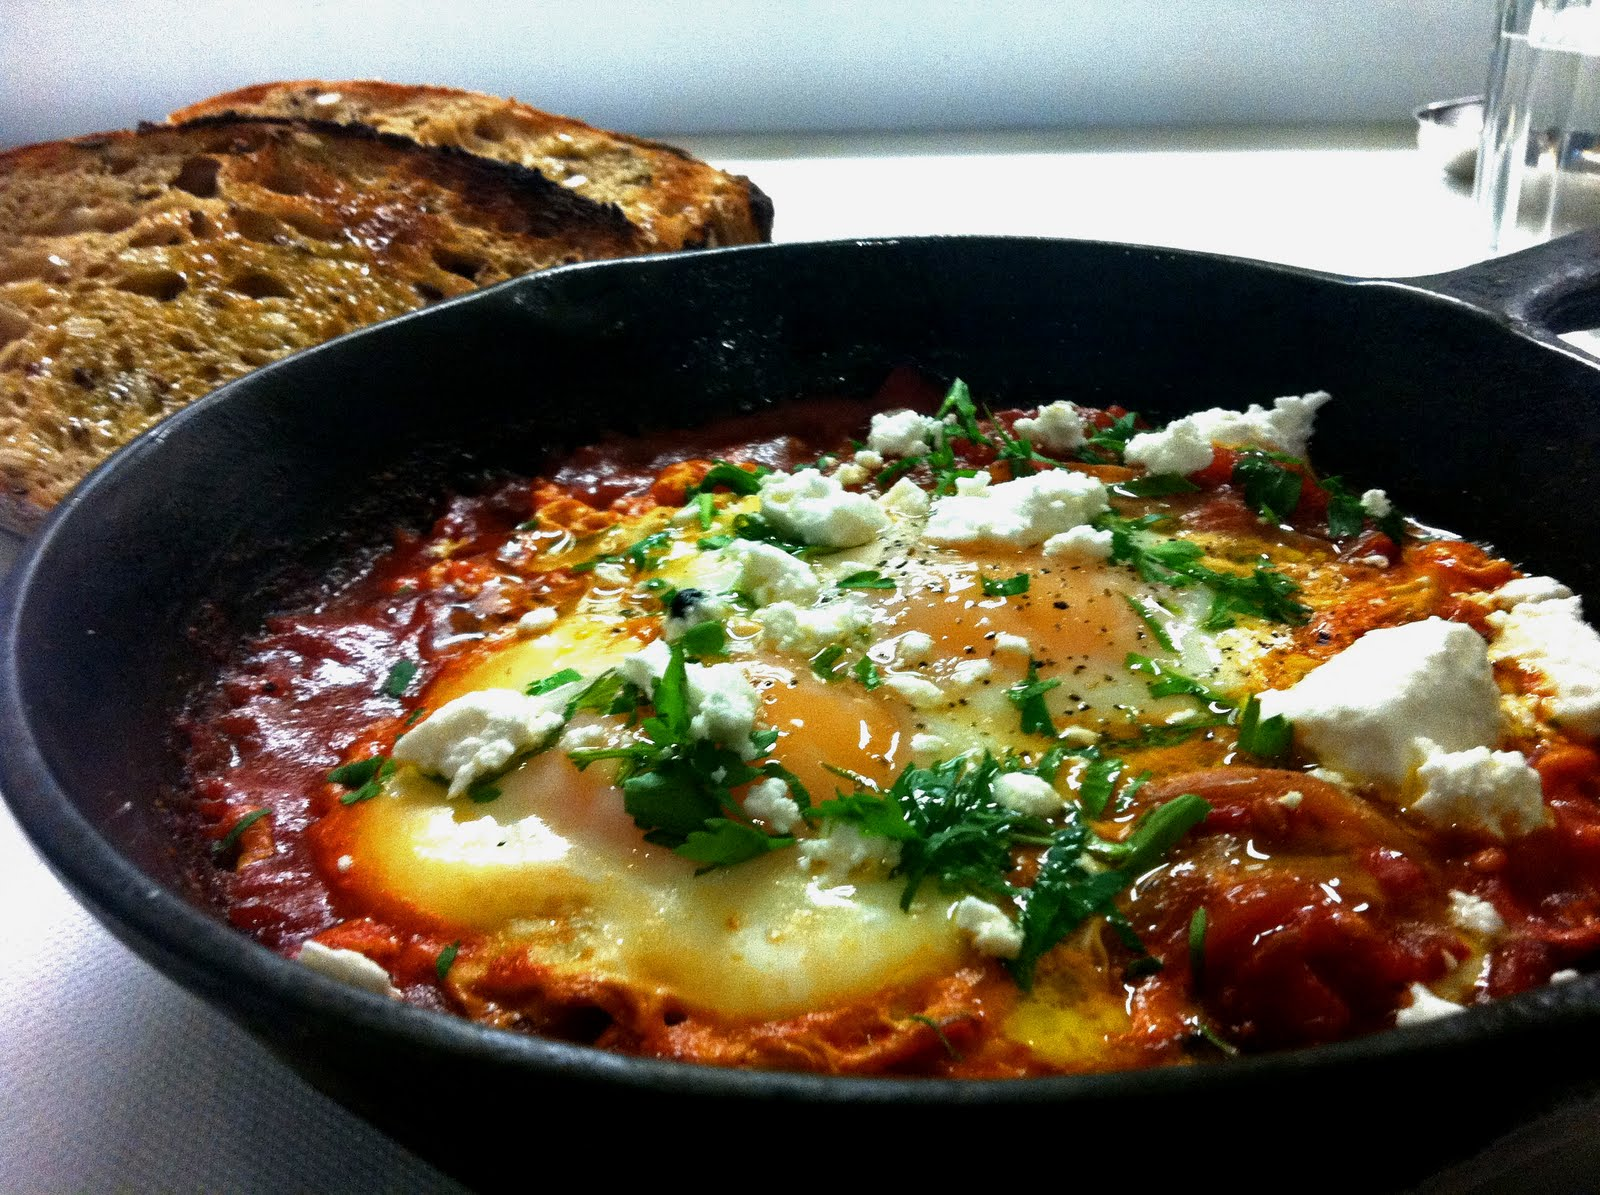 Shakshouka with feta in a skillet